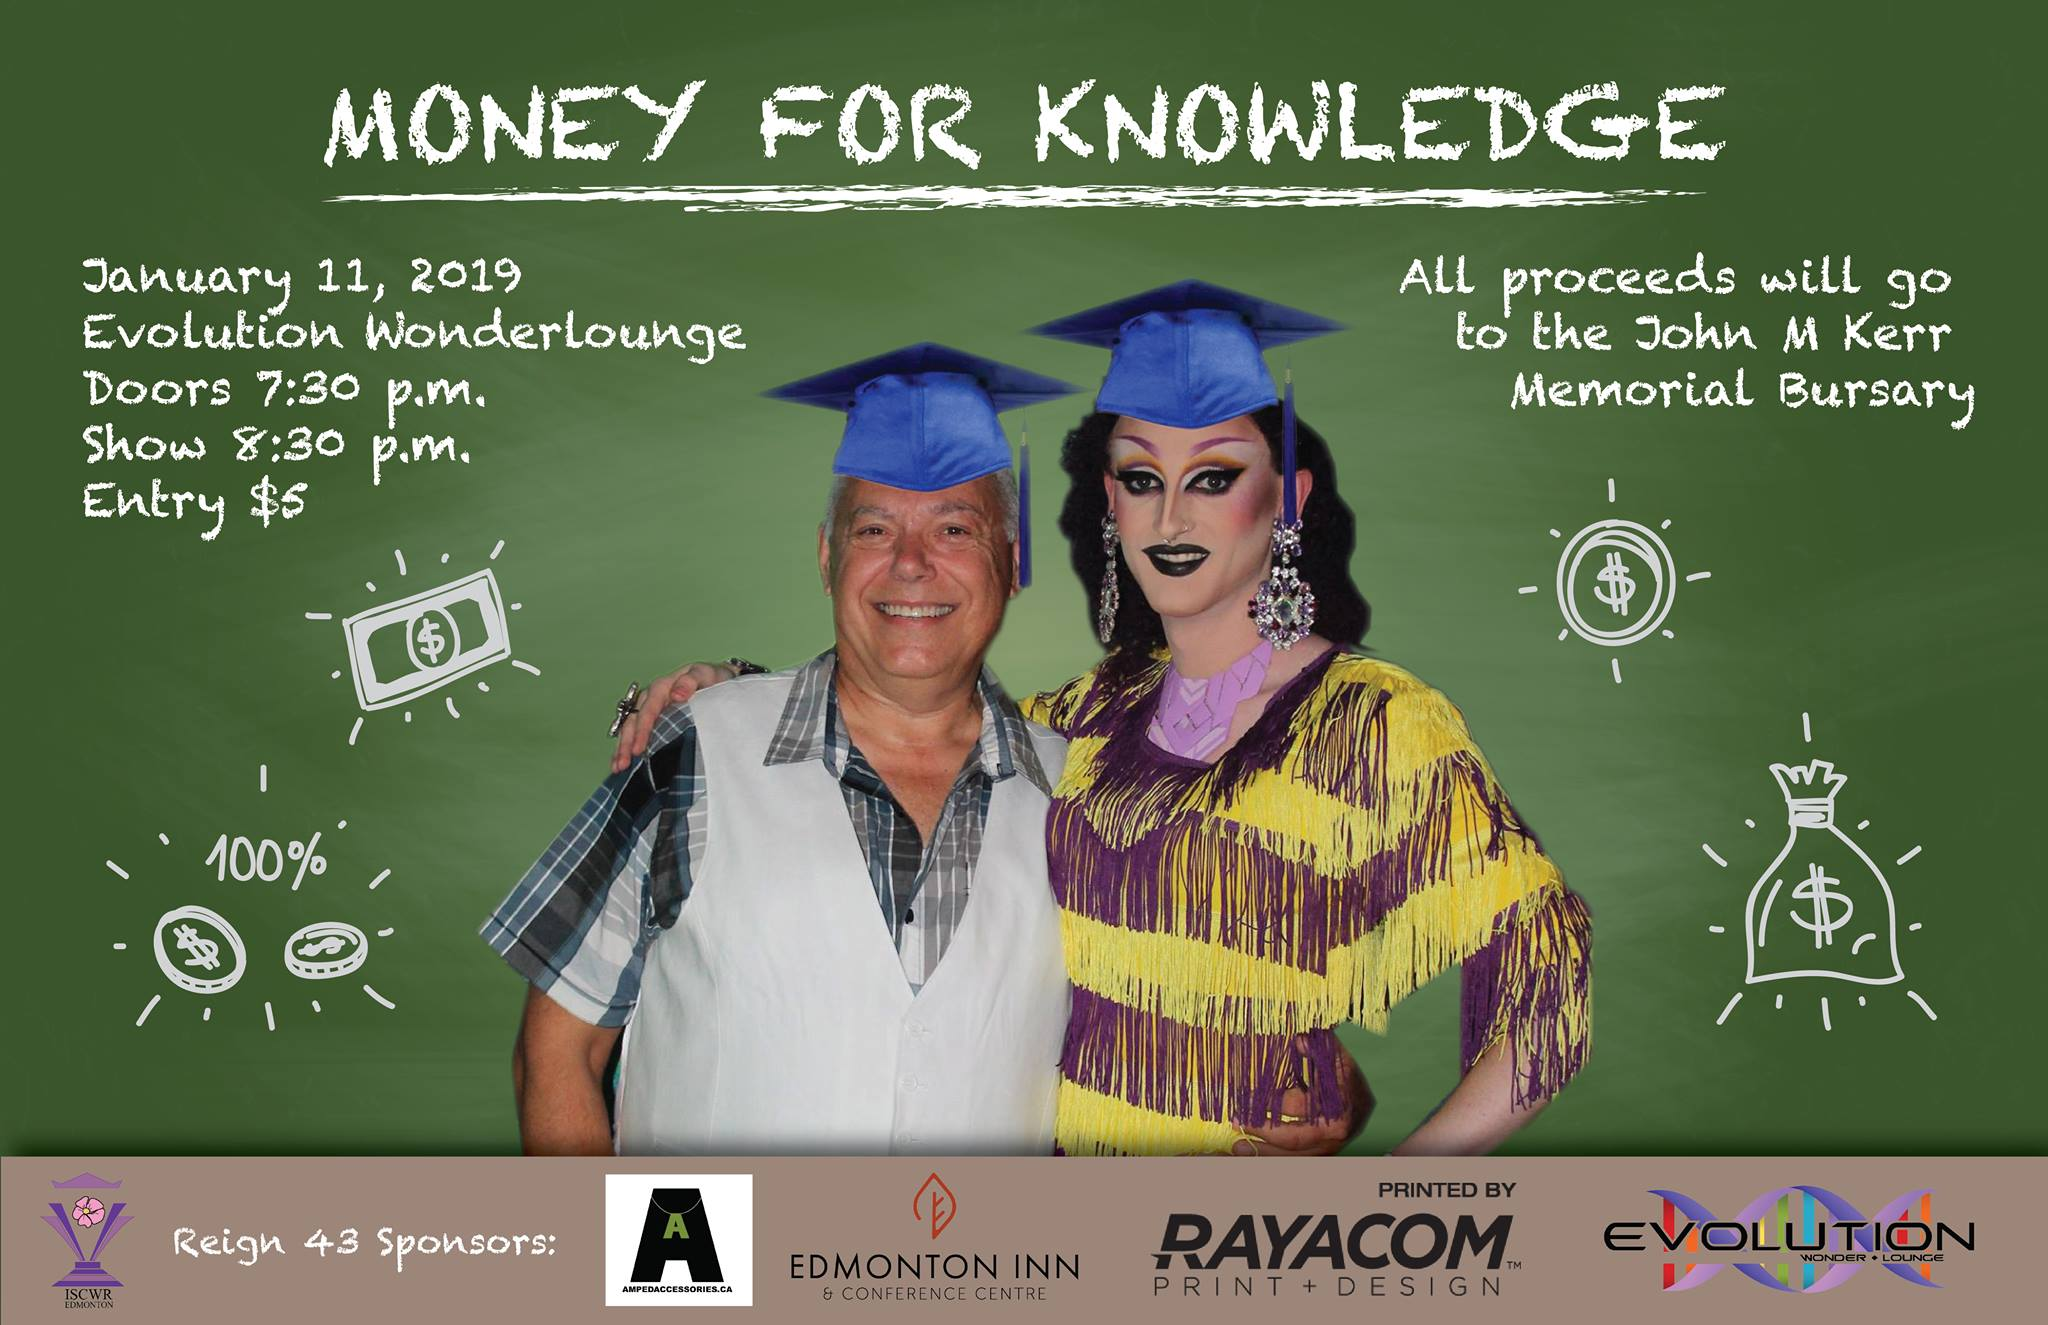 Money for Knowledge Show (Edmonton, Sat Jan 12, 7:30PM)